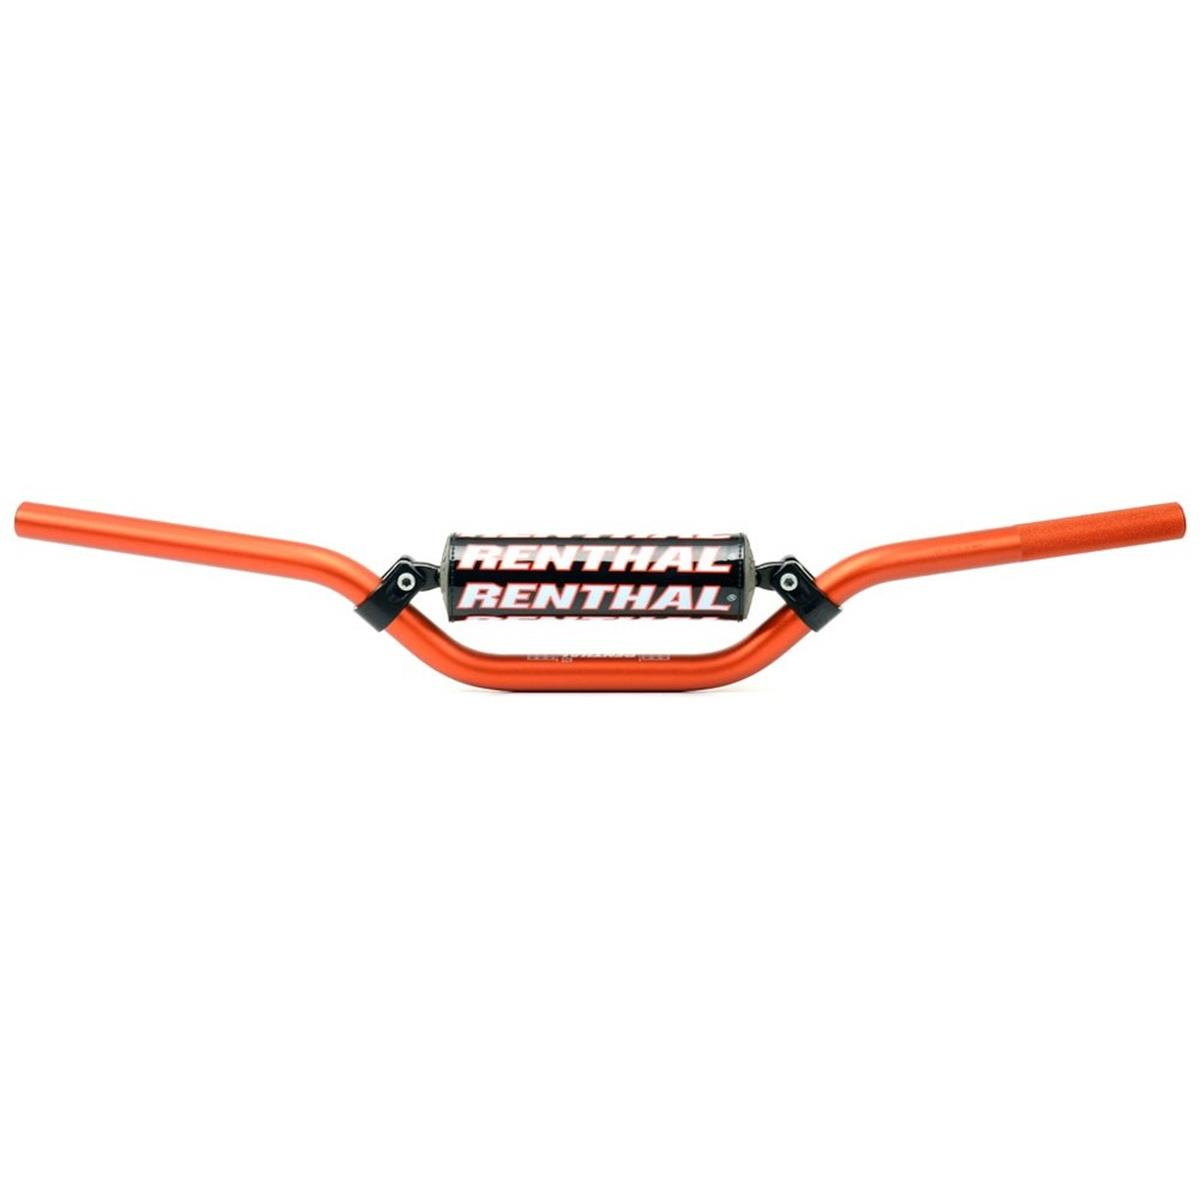 Renthal Lenker Offroad 798 Orange